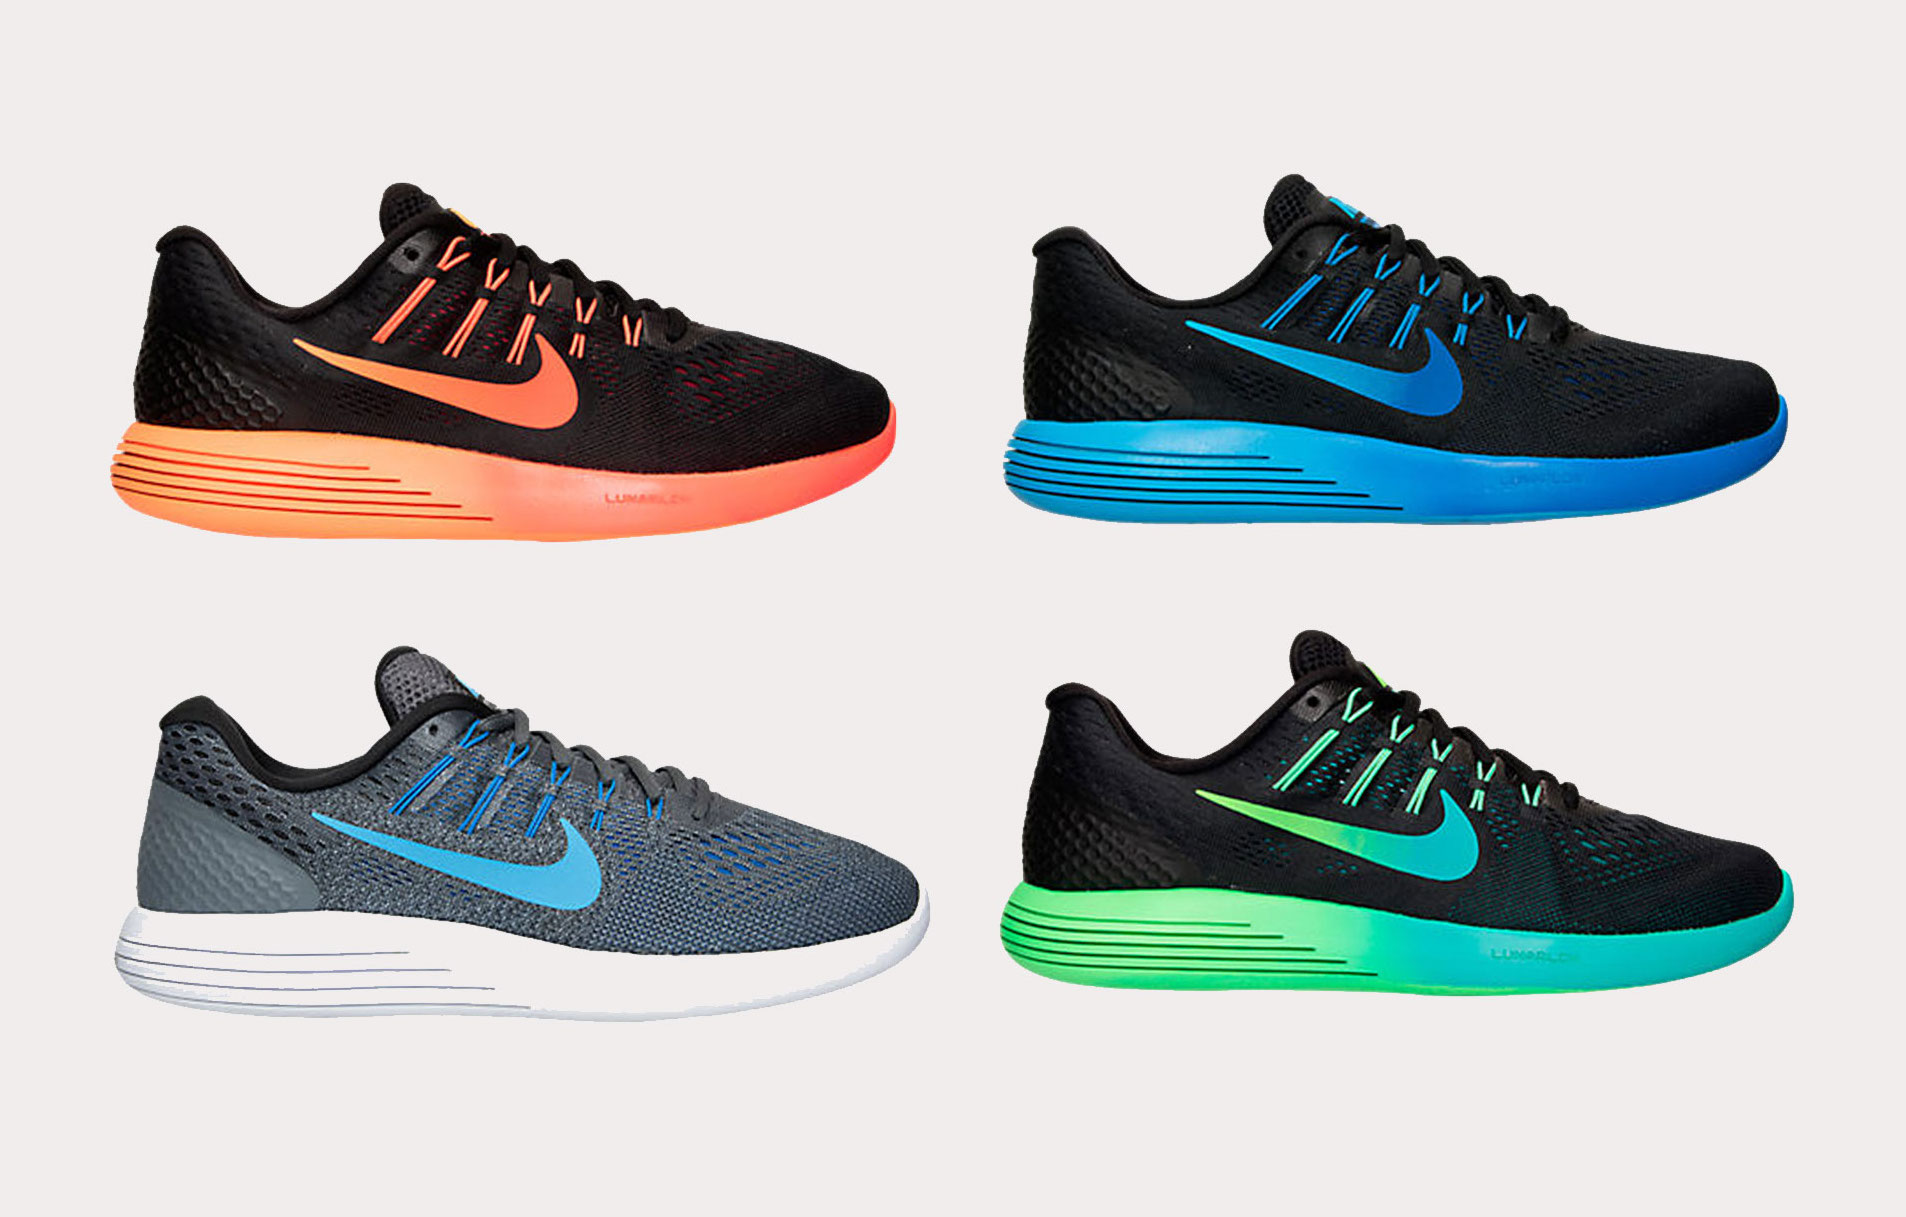 fa66c28be0c2 Nike Lunarglide 8 Running Shoes Sale  69.98 - Soleracks